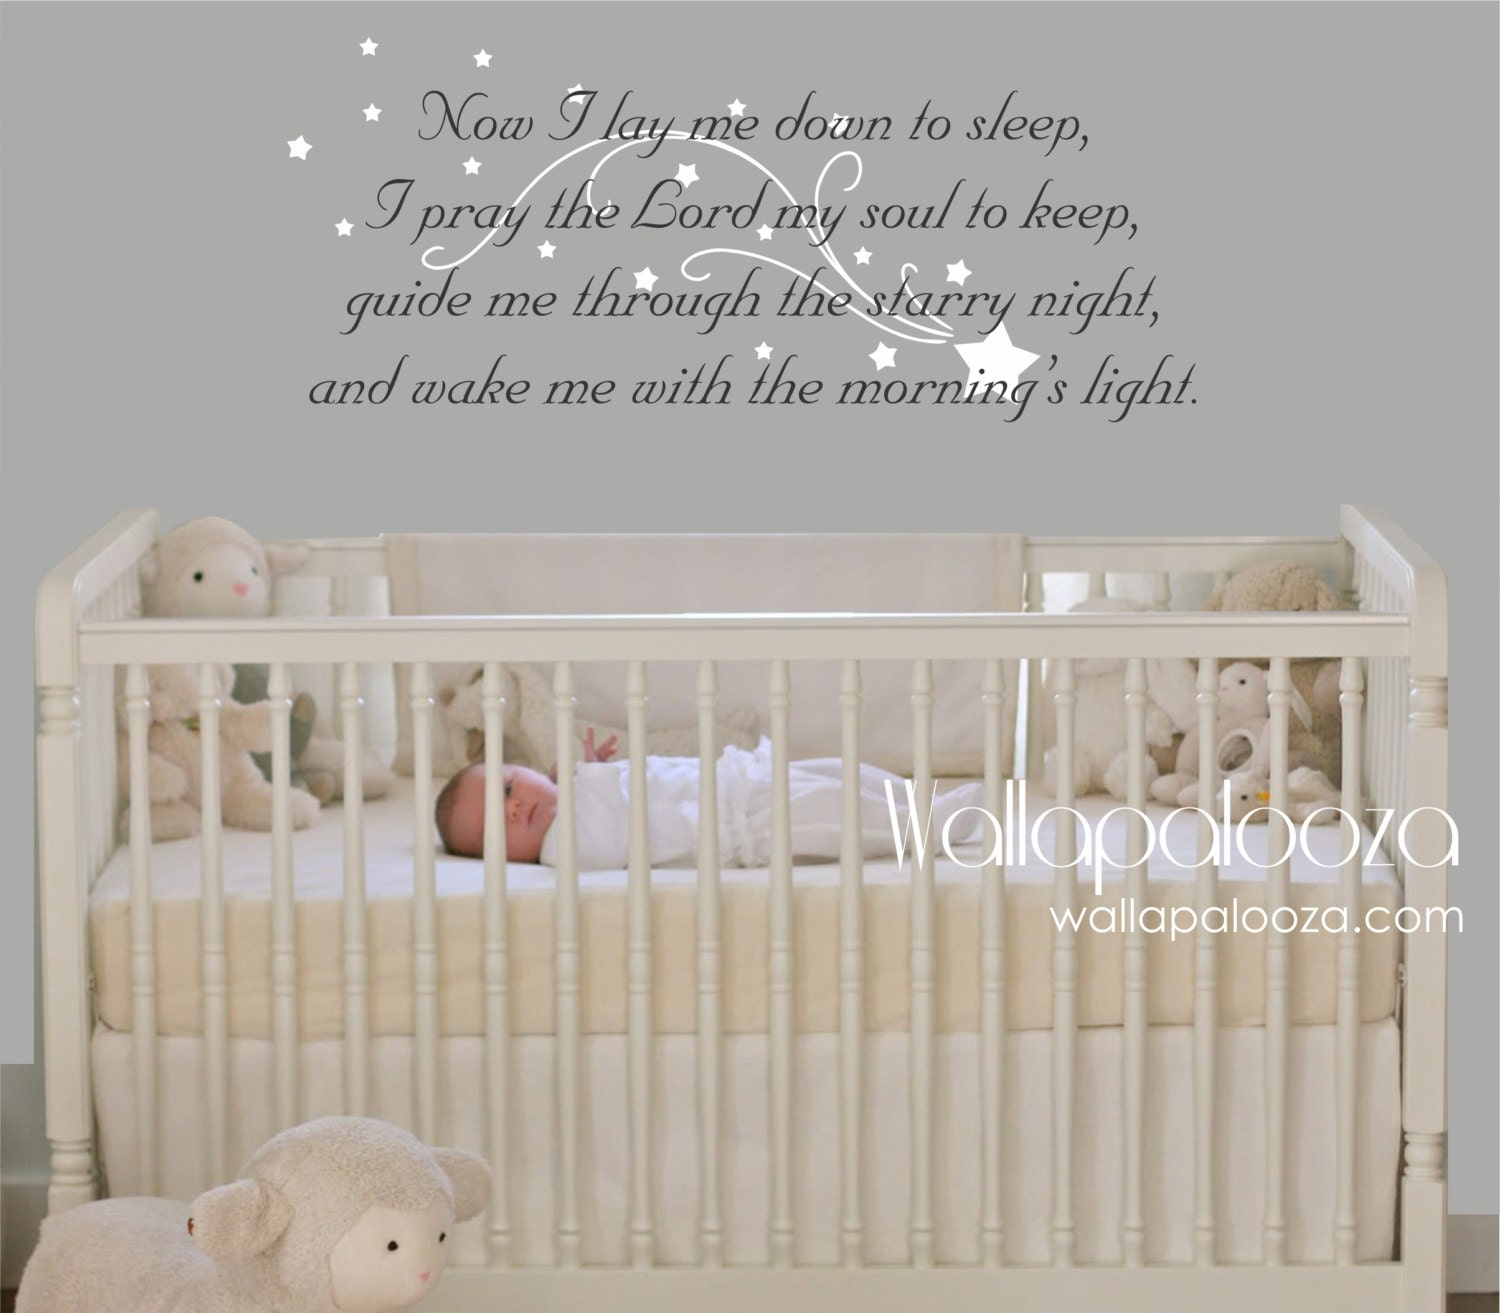 Now I Lay Me Down To Sleep Wall Decal Prayer Wall Decal - Wall decals in nursery